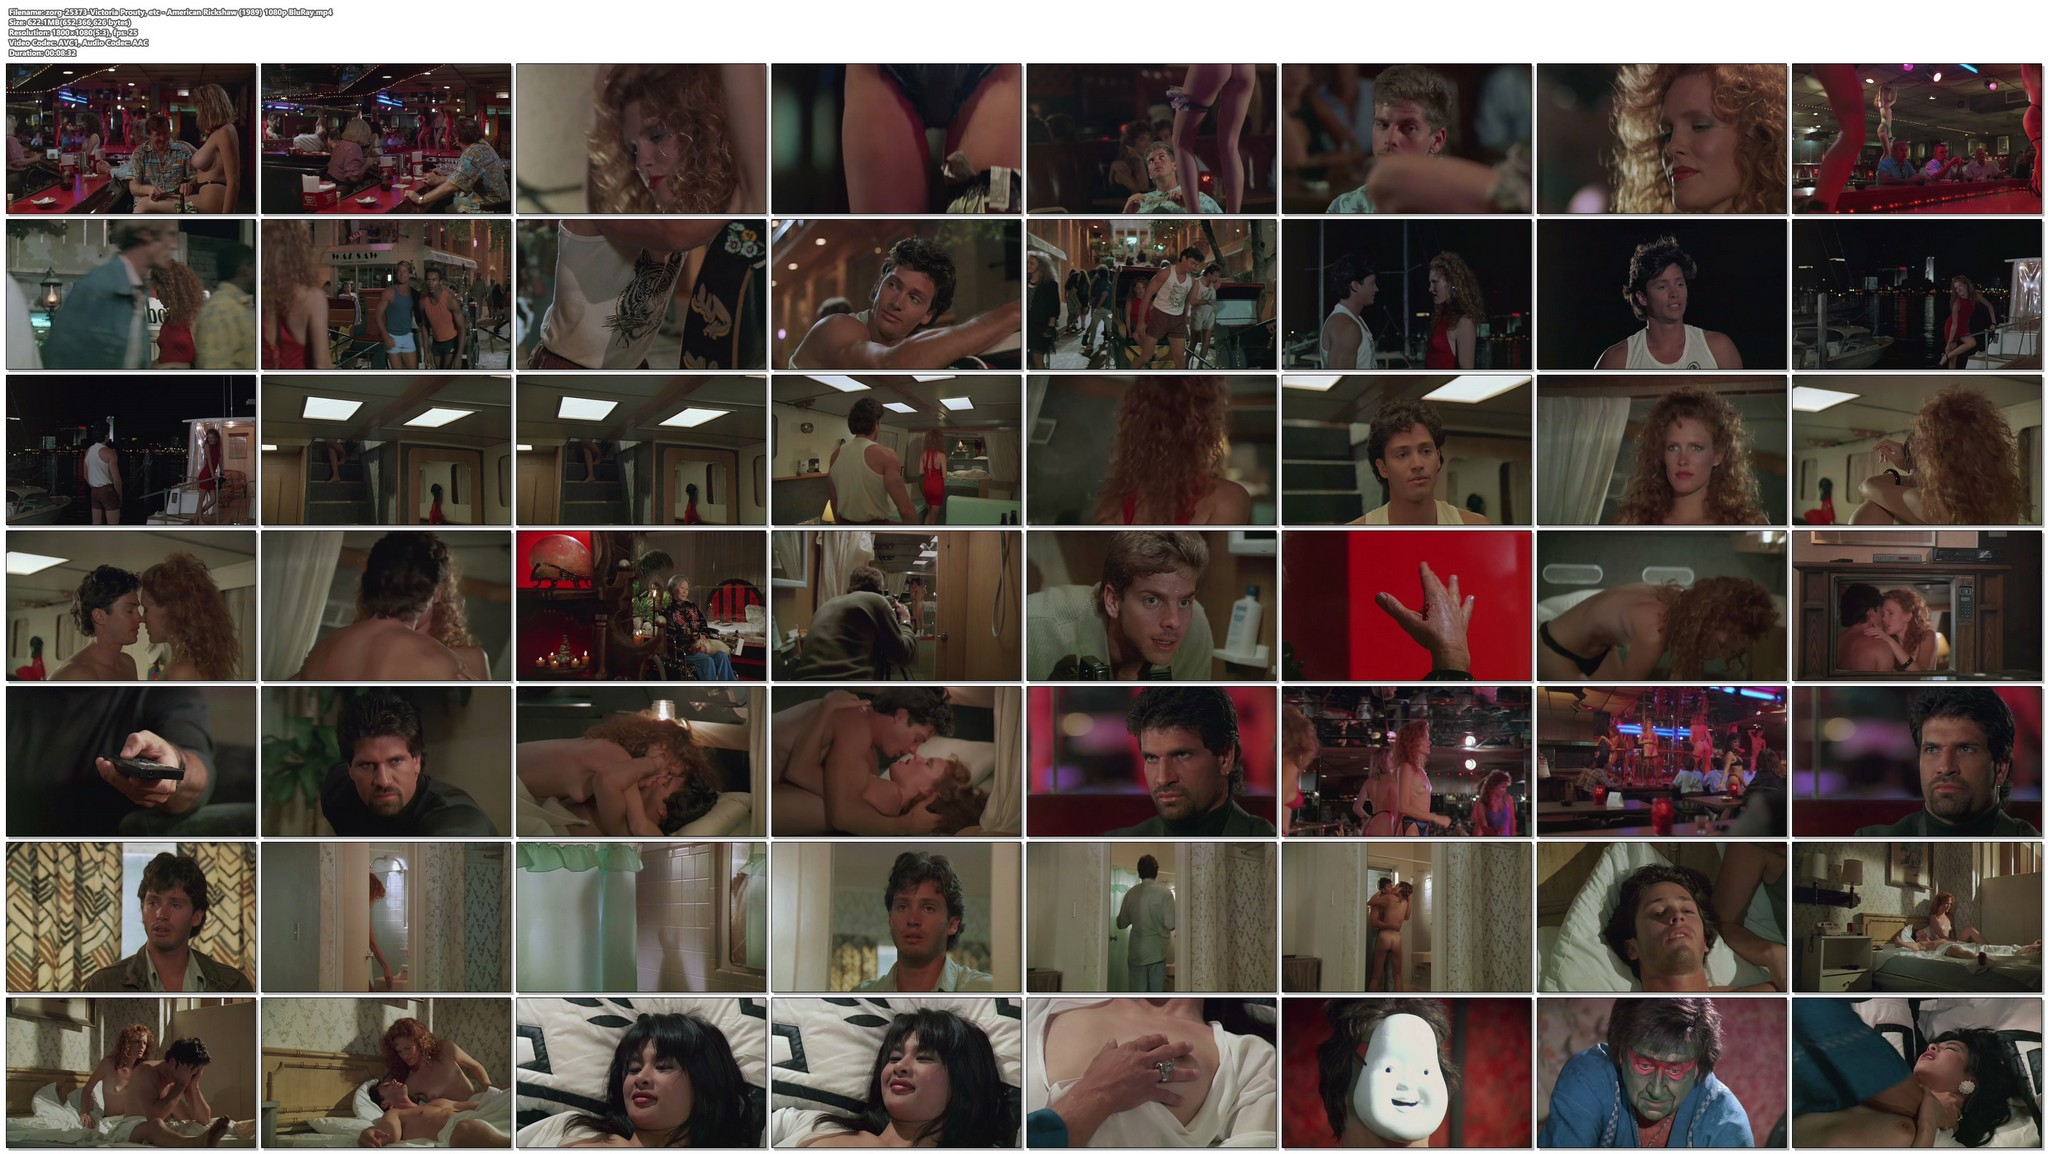 Victoria Prouty nude and sex in the shower American Rickshaw 1989 1080p BluRay 19